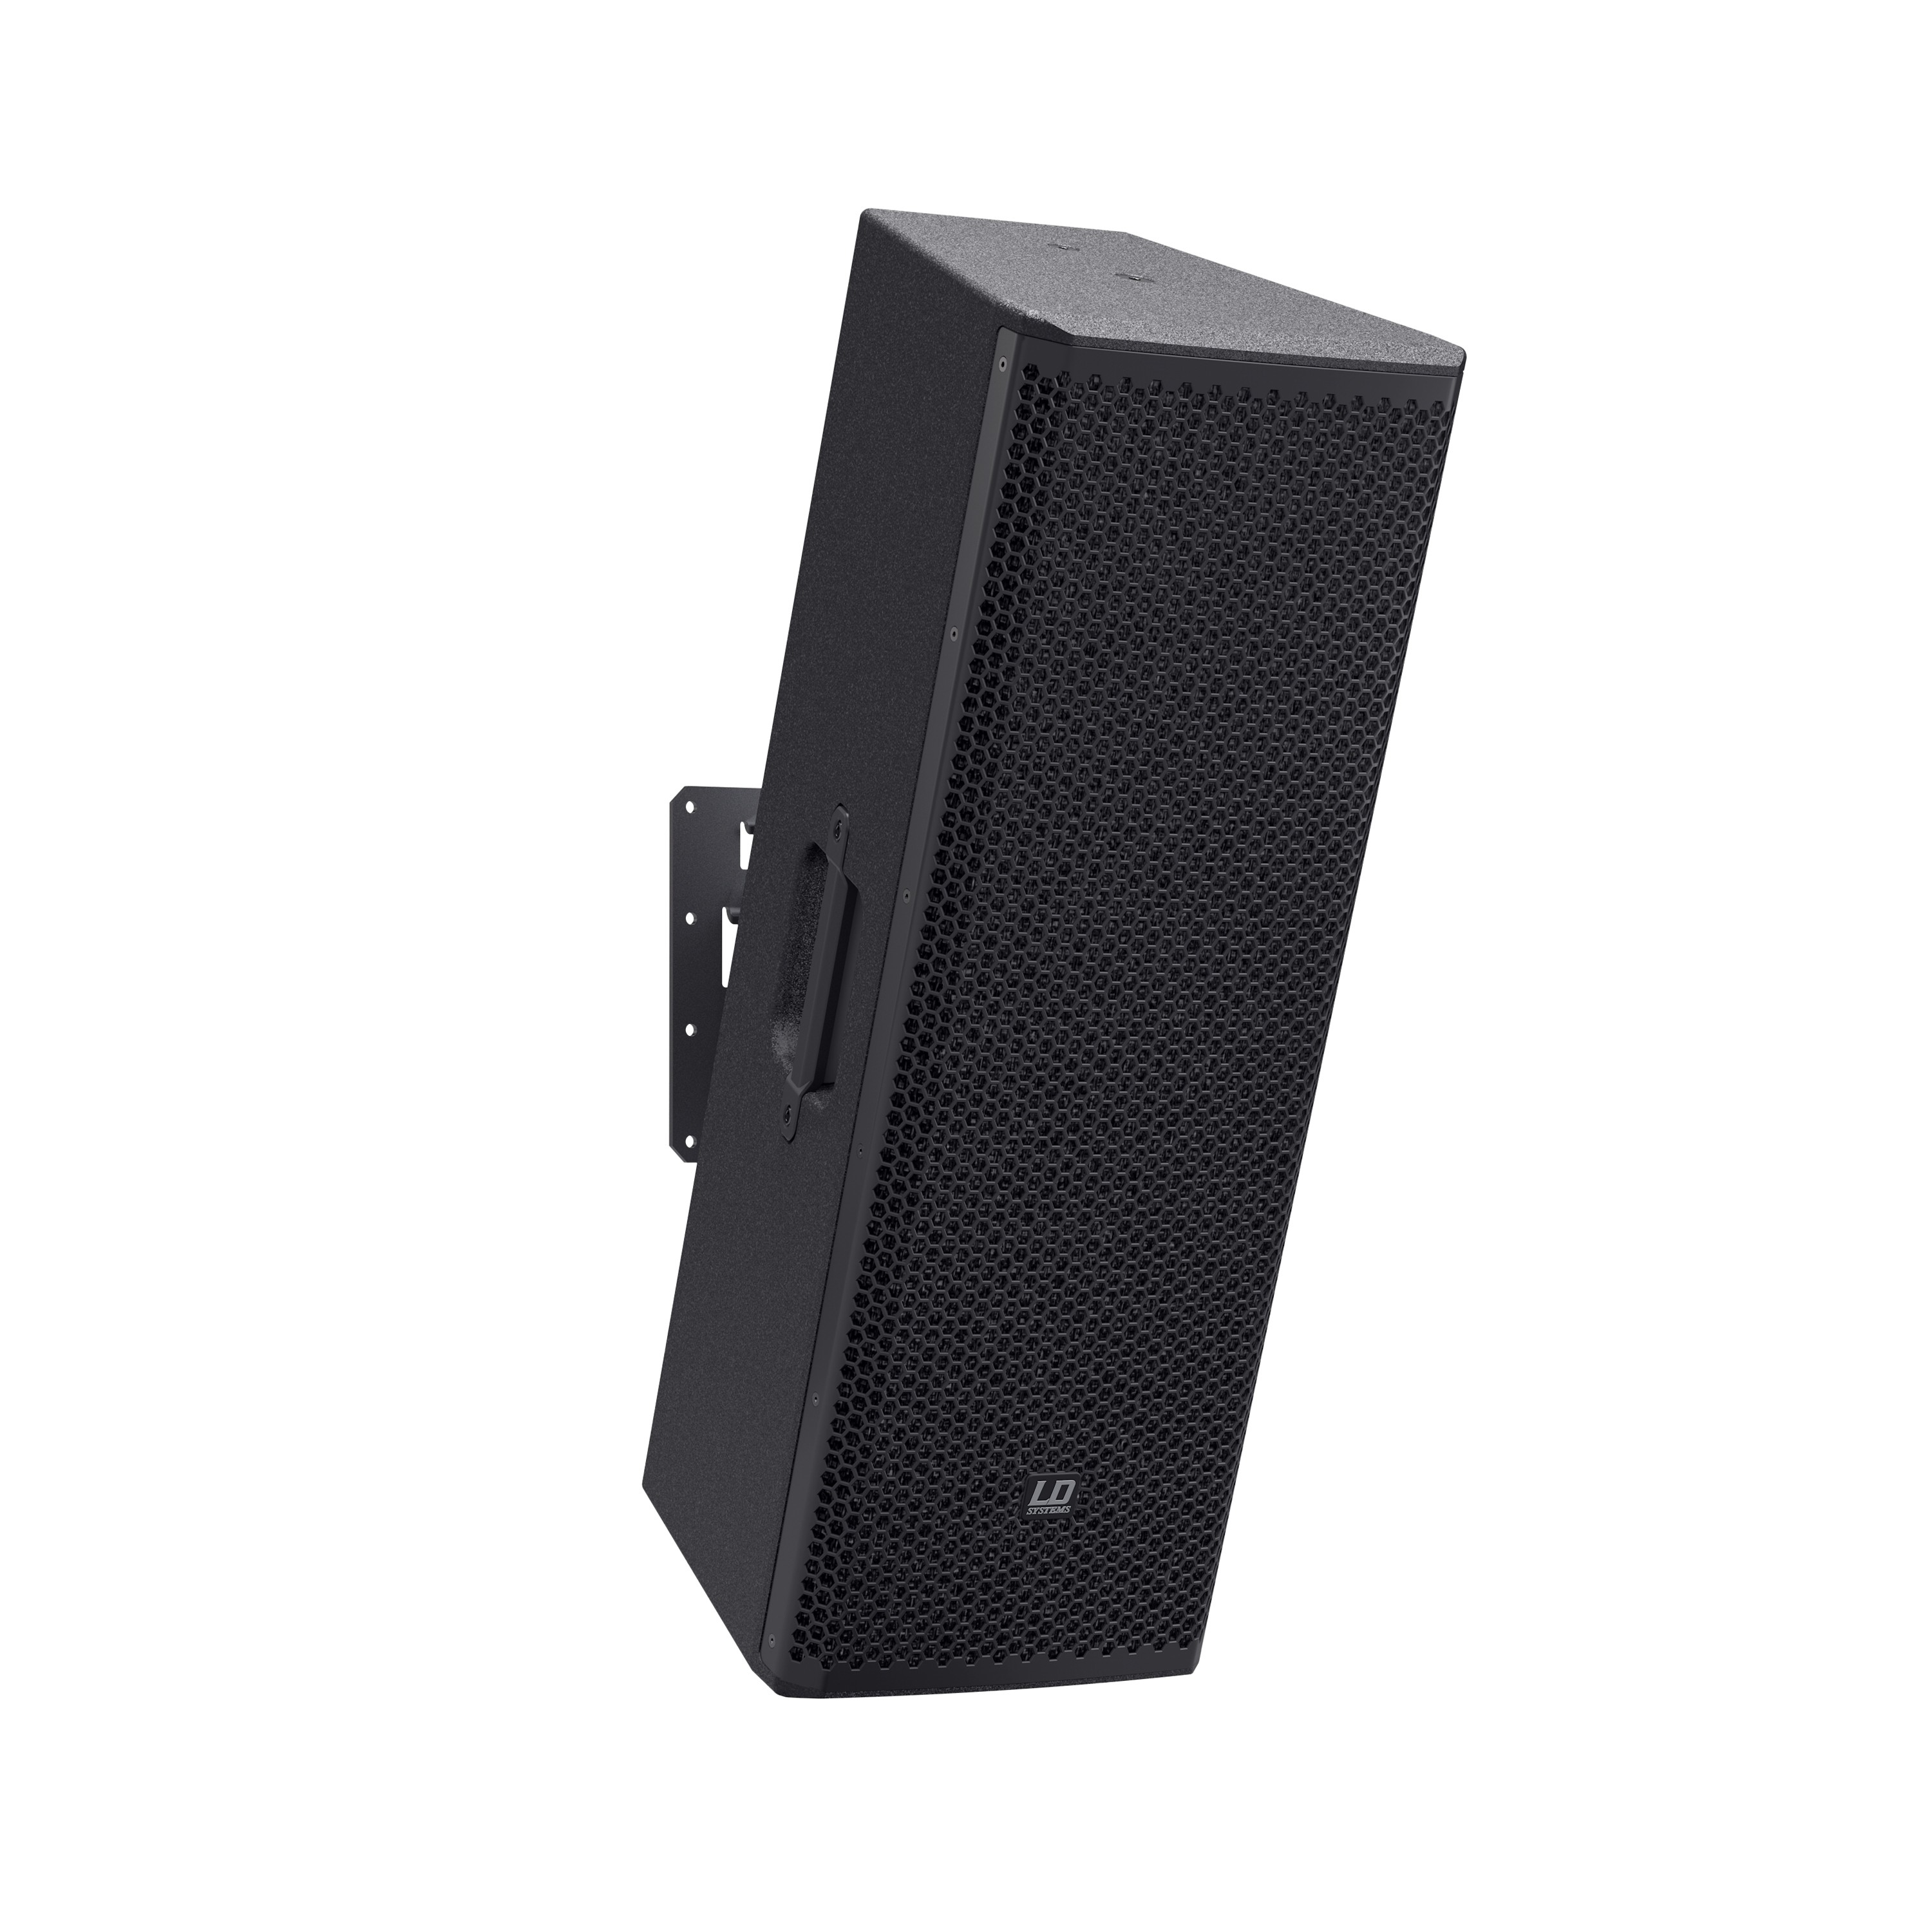 "LD SYSTEMS Stinger 28 A G3 WMB 1: muurbeugel 2x8"" speaker"